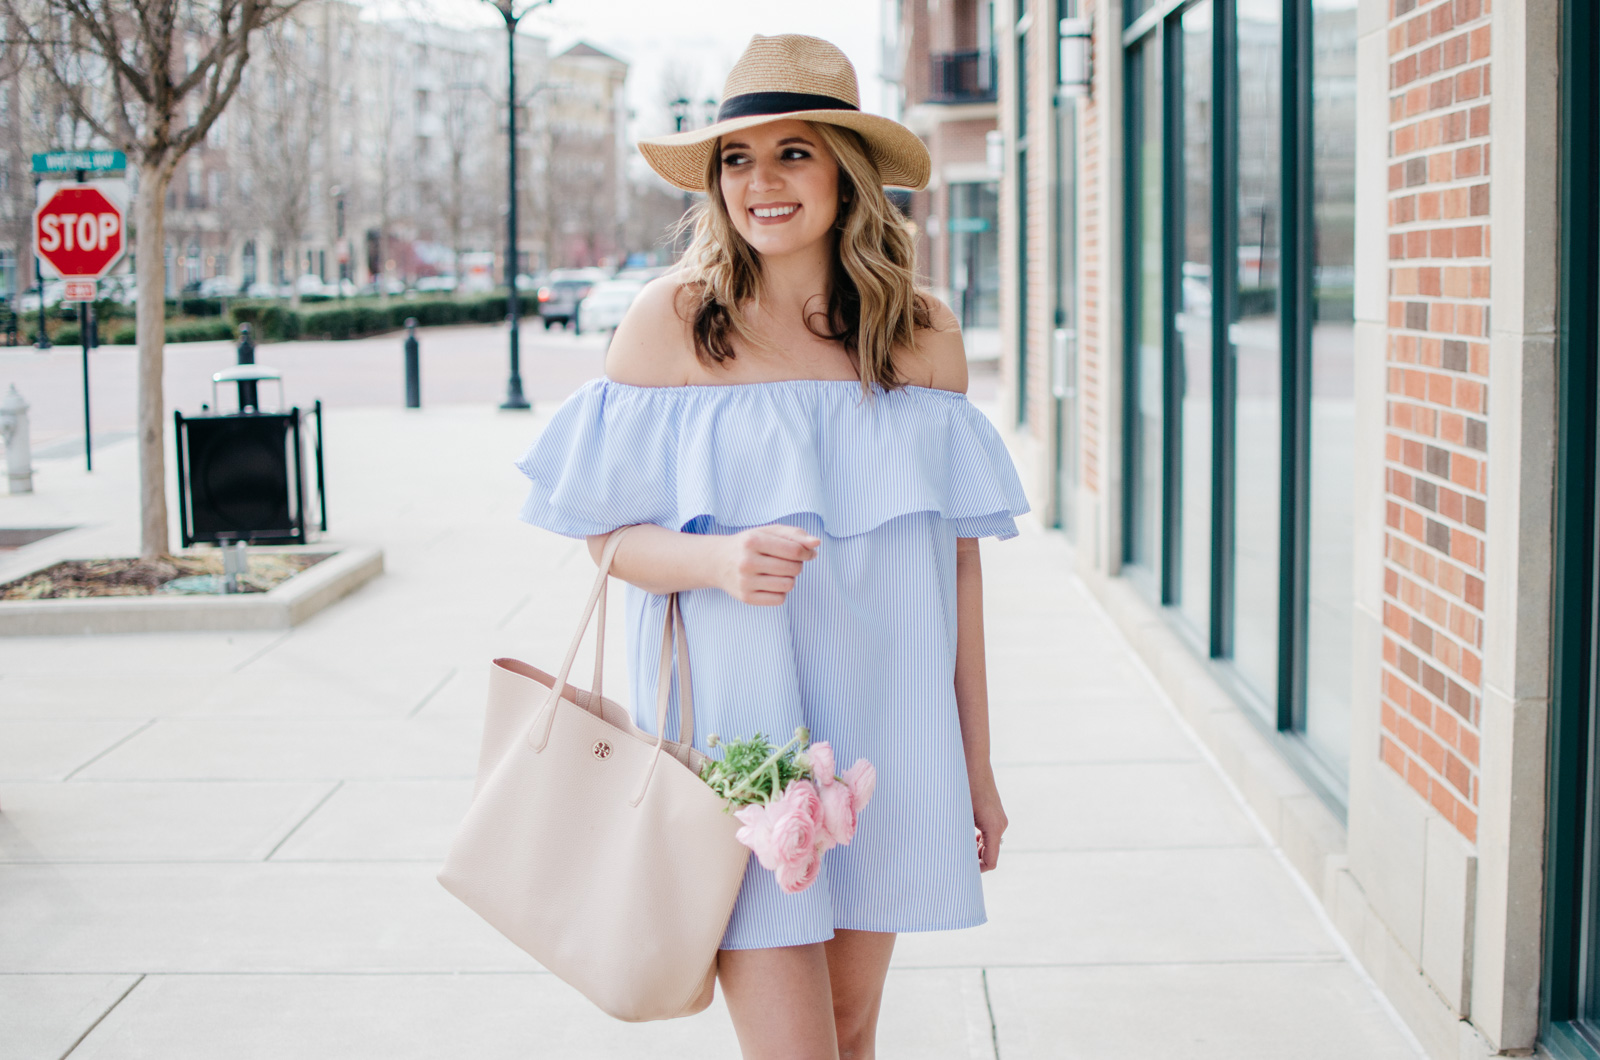 preppy outfit - girly spring outfit | Click through for more cute spring outfits or to shop this look! bylaurenm.com